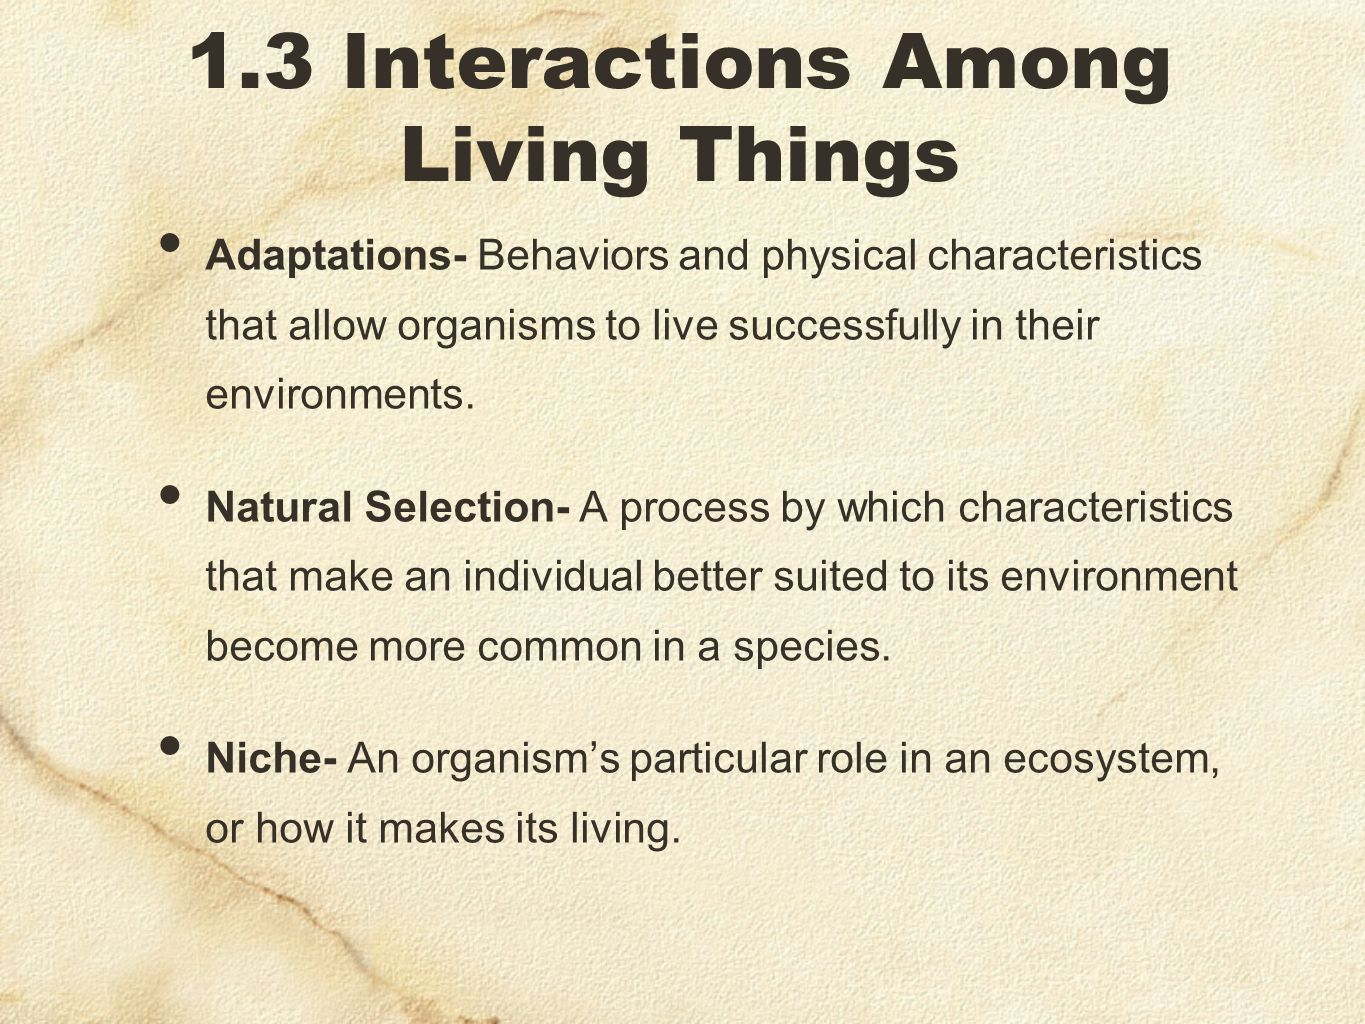 No organism exists in isolation.